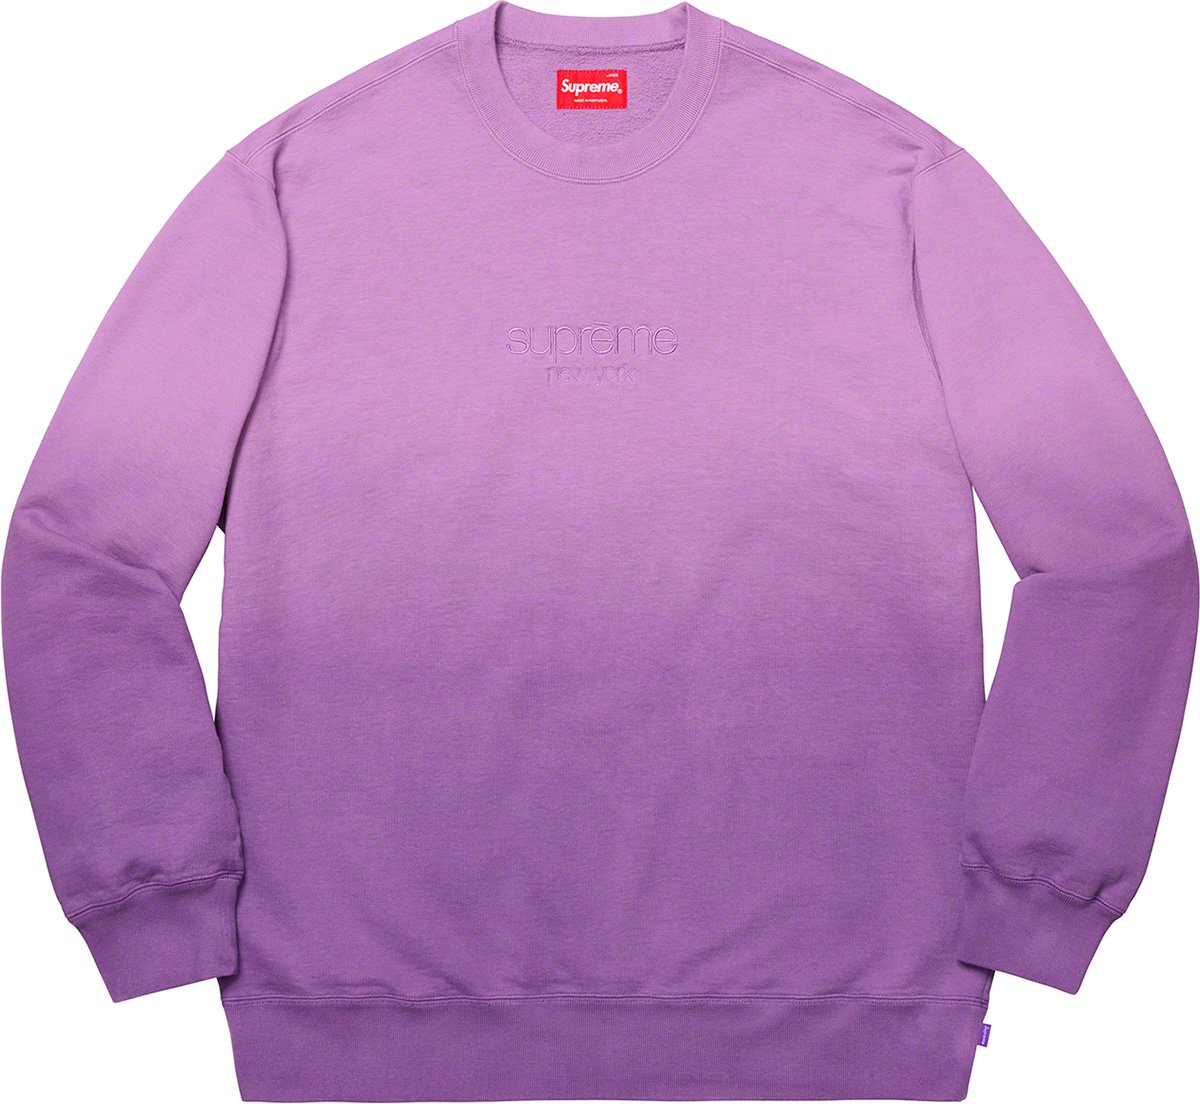 supreme-19ss-spring-summer-dipped-crewneck